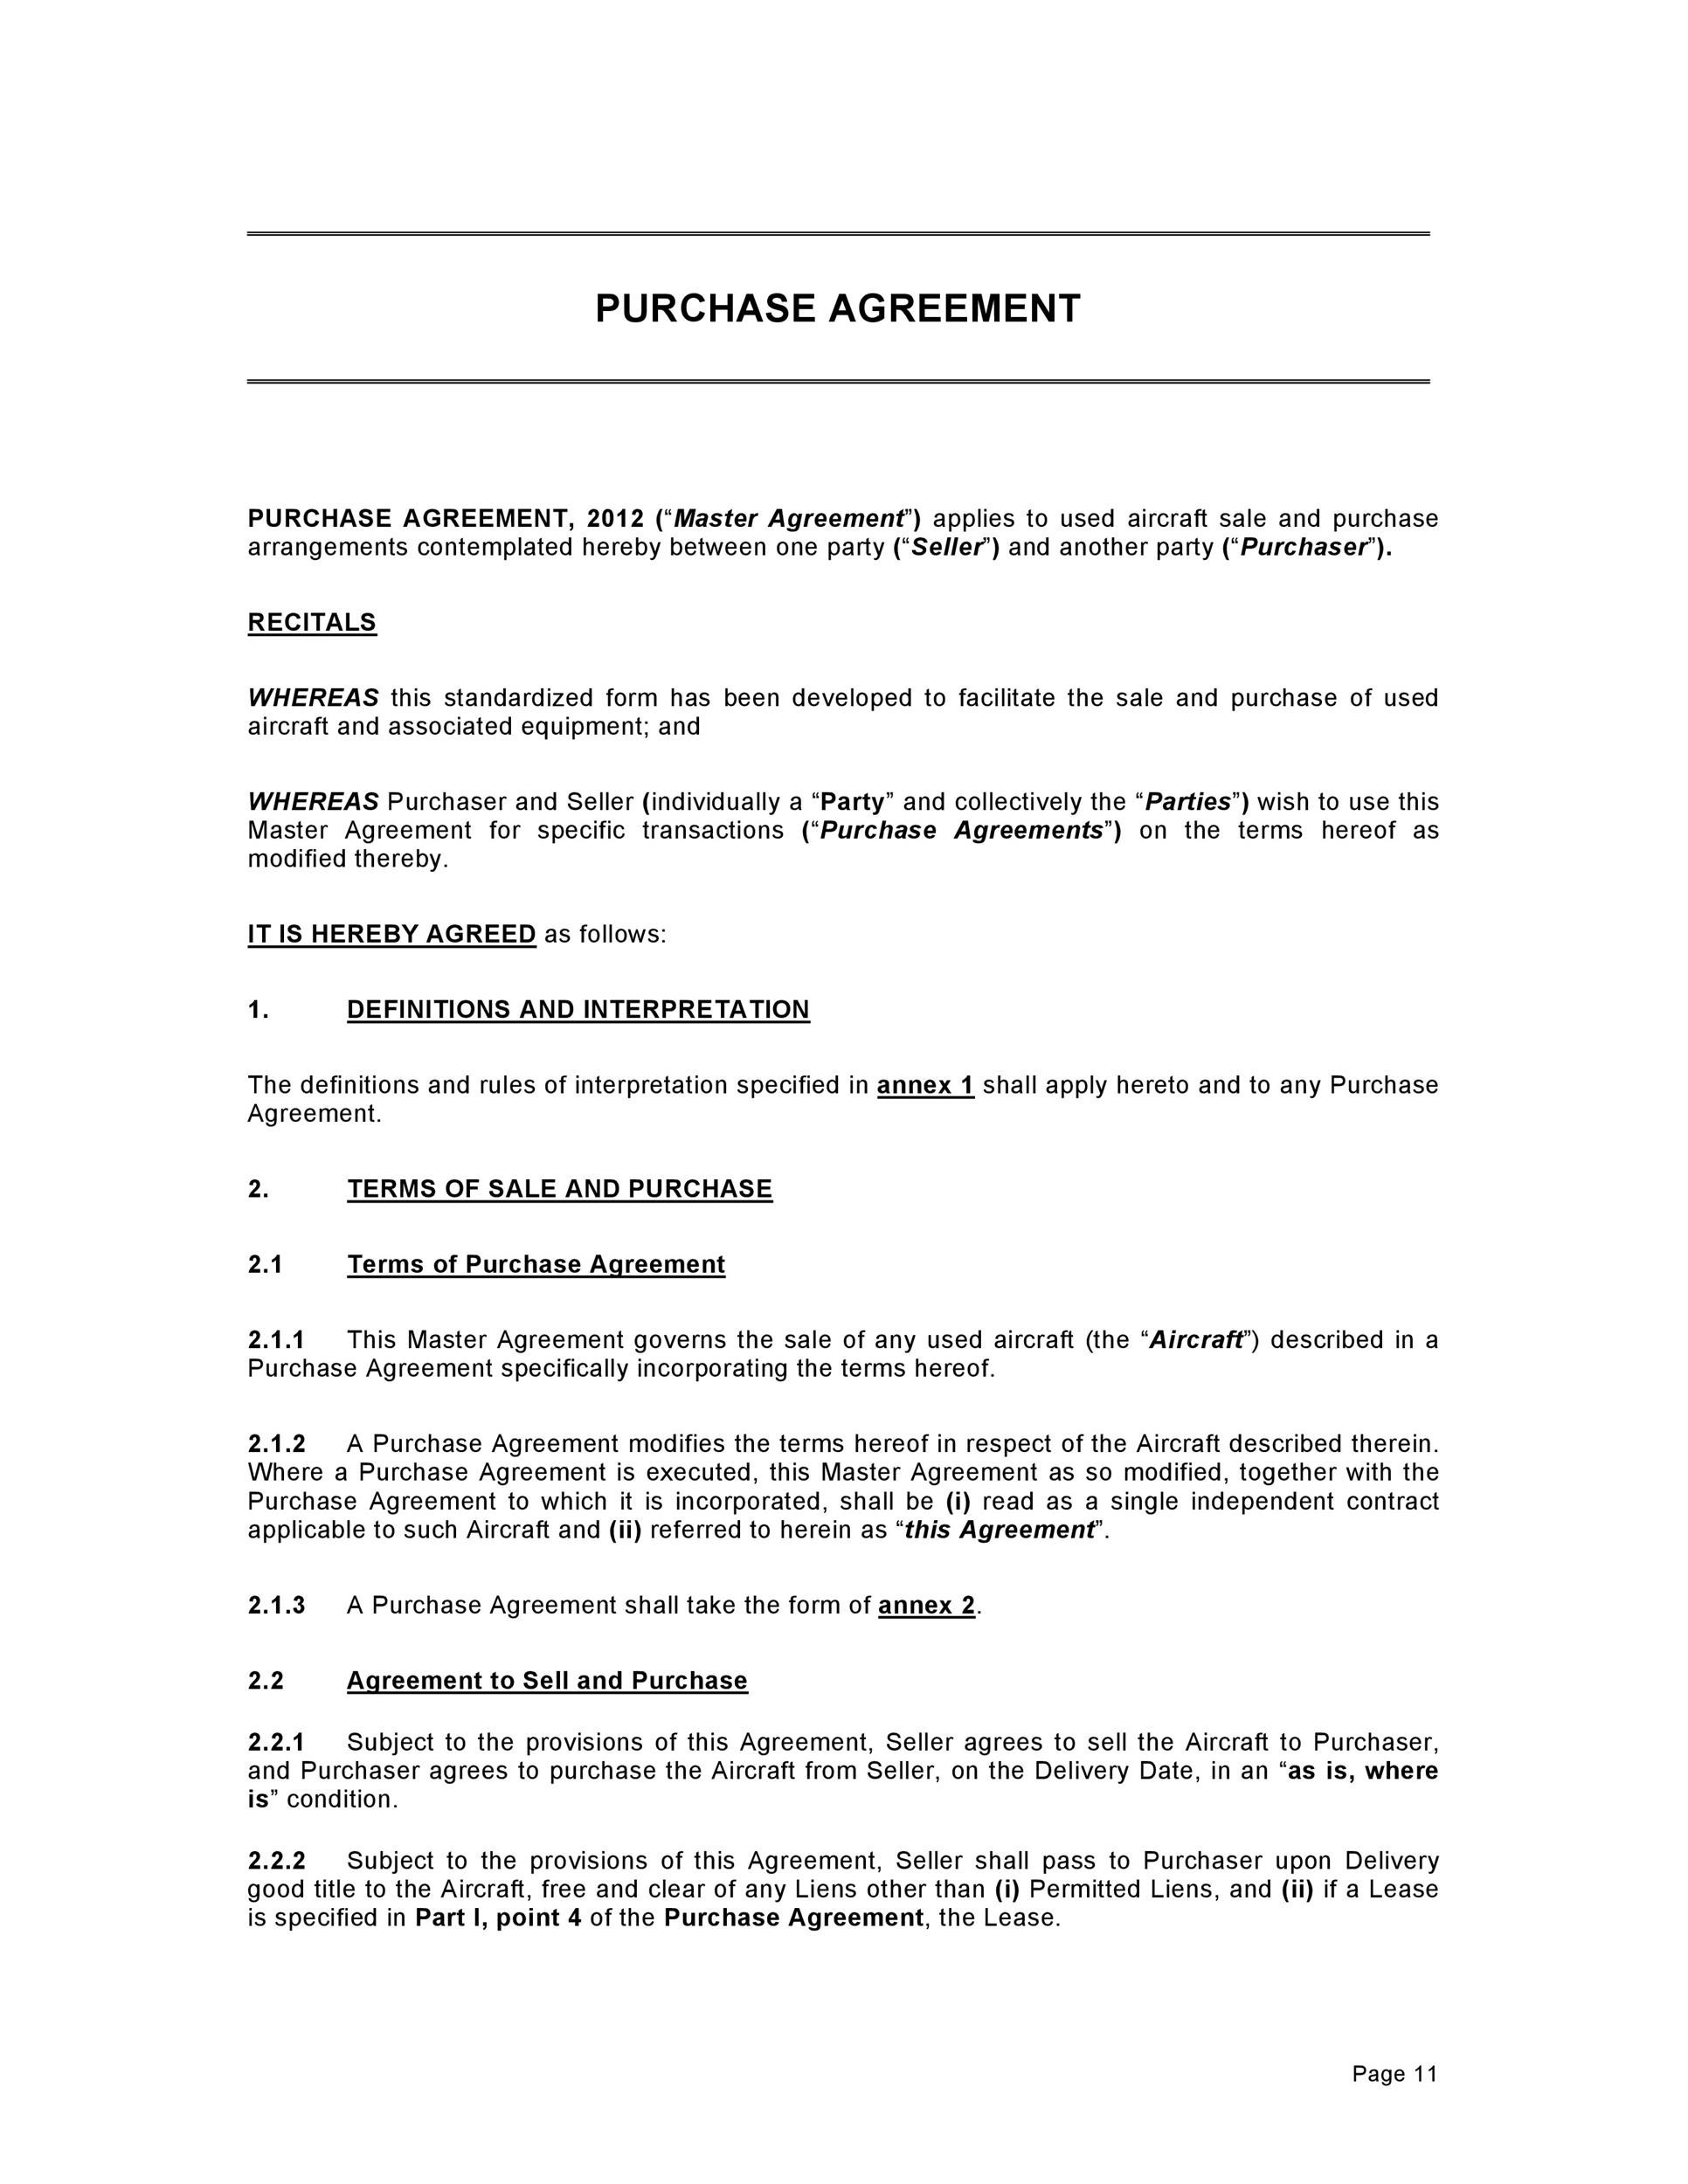 Agreement. Sample Media Sponsorship Agreement Template Download 15